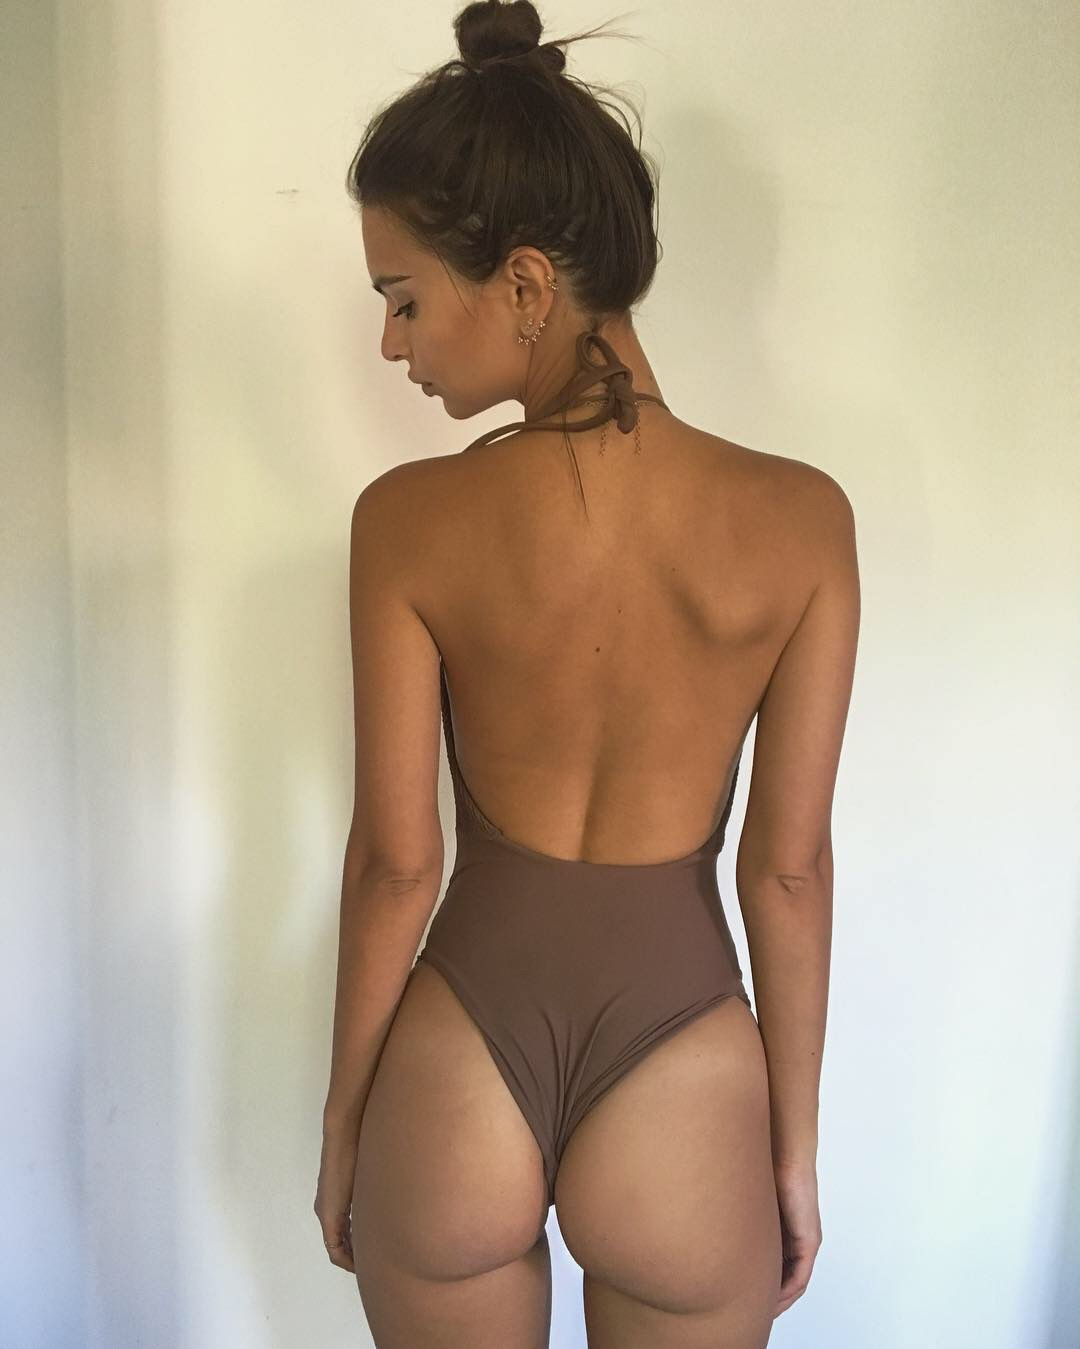 the best celebrity ass